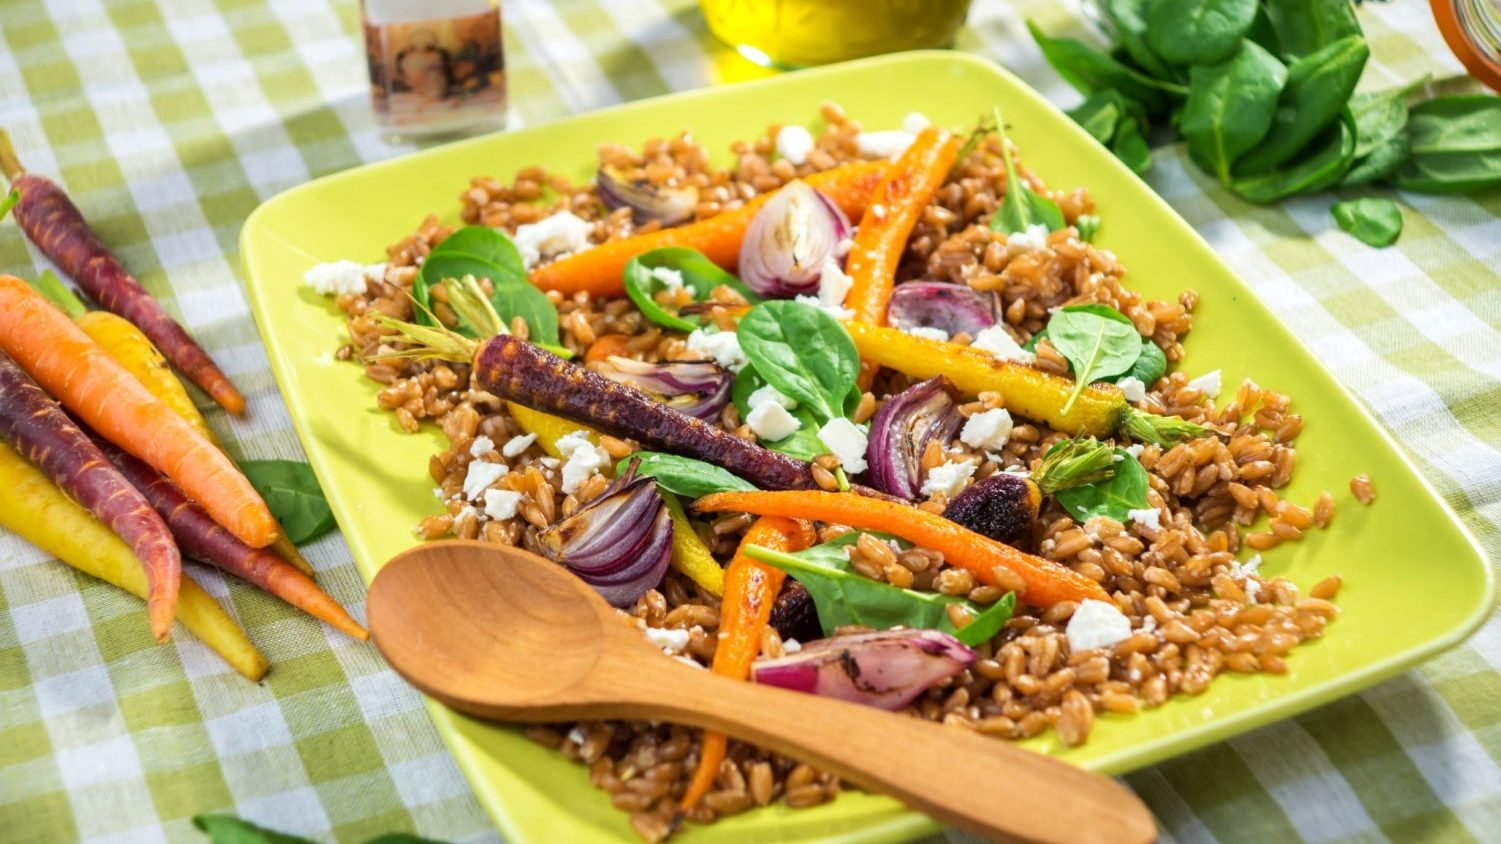 Image for Budget Cooking at the Co-op: Farro & Cumin-Roasted Carrot Salad